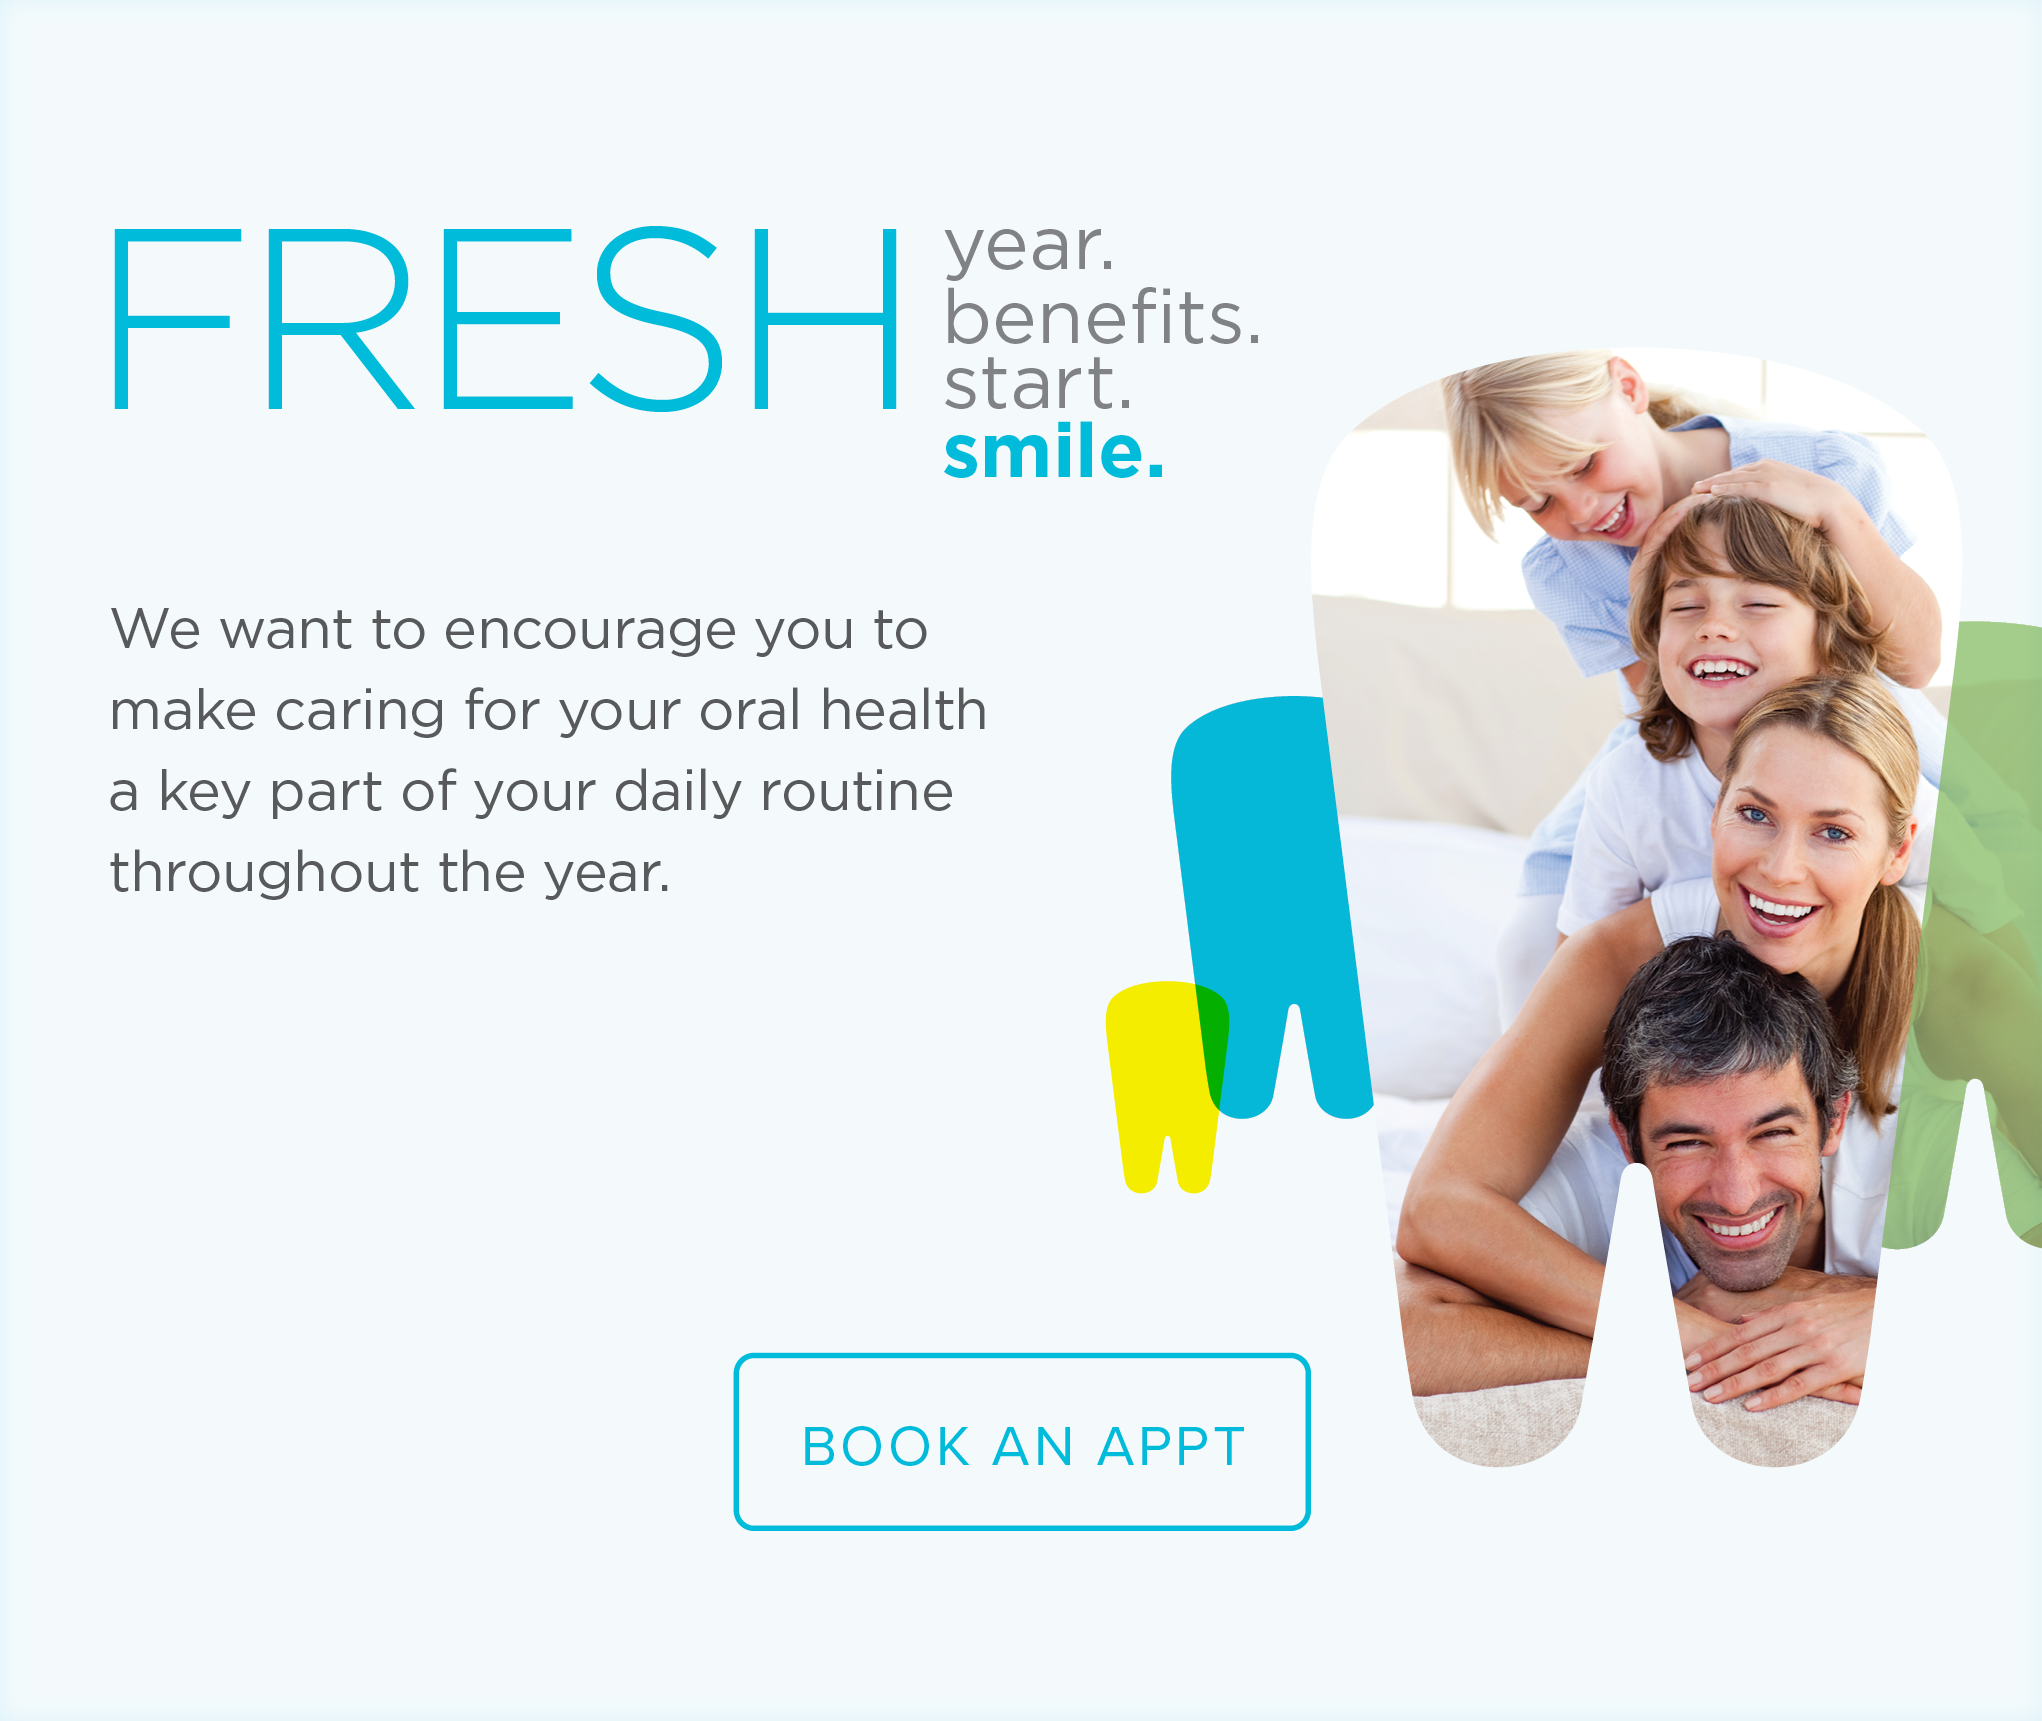 Shawnee Modern Dentistry - Make the Most of Your Benefits